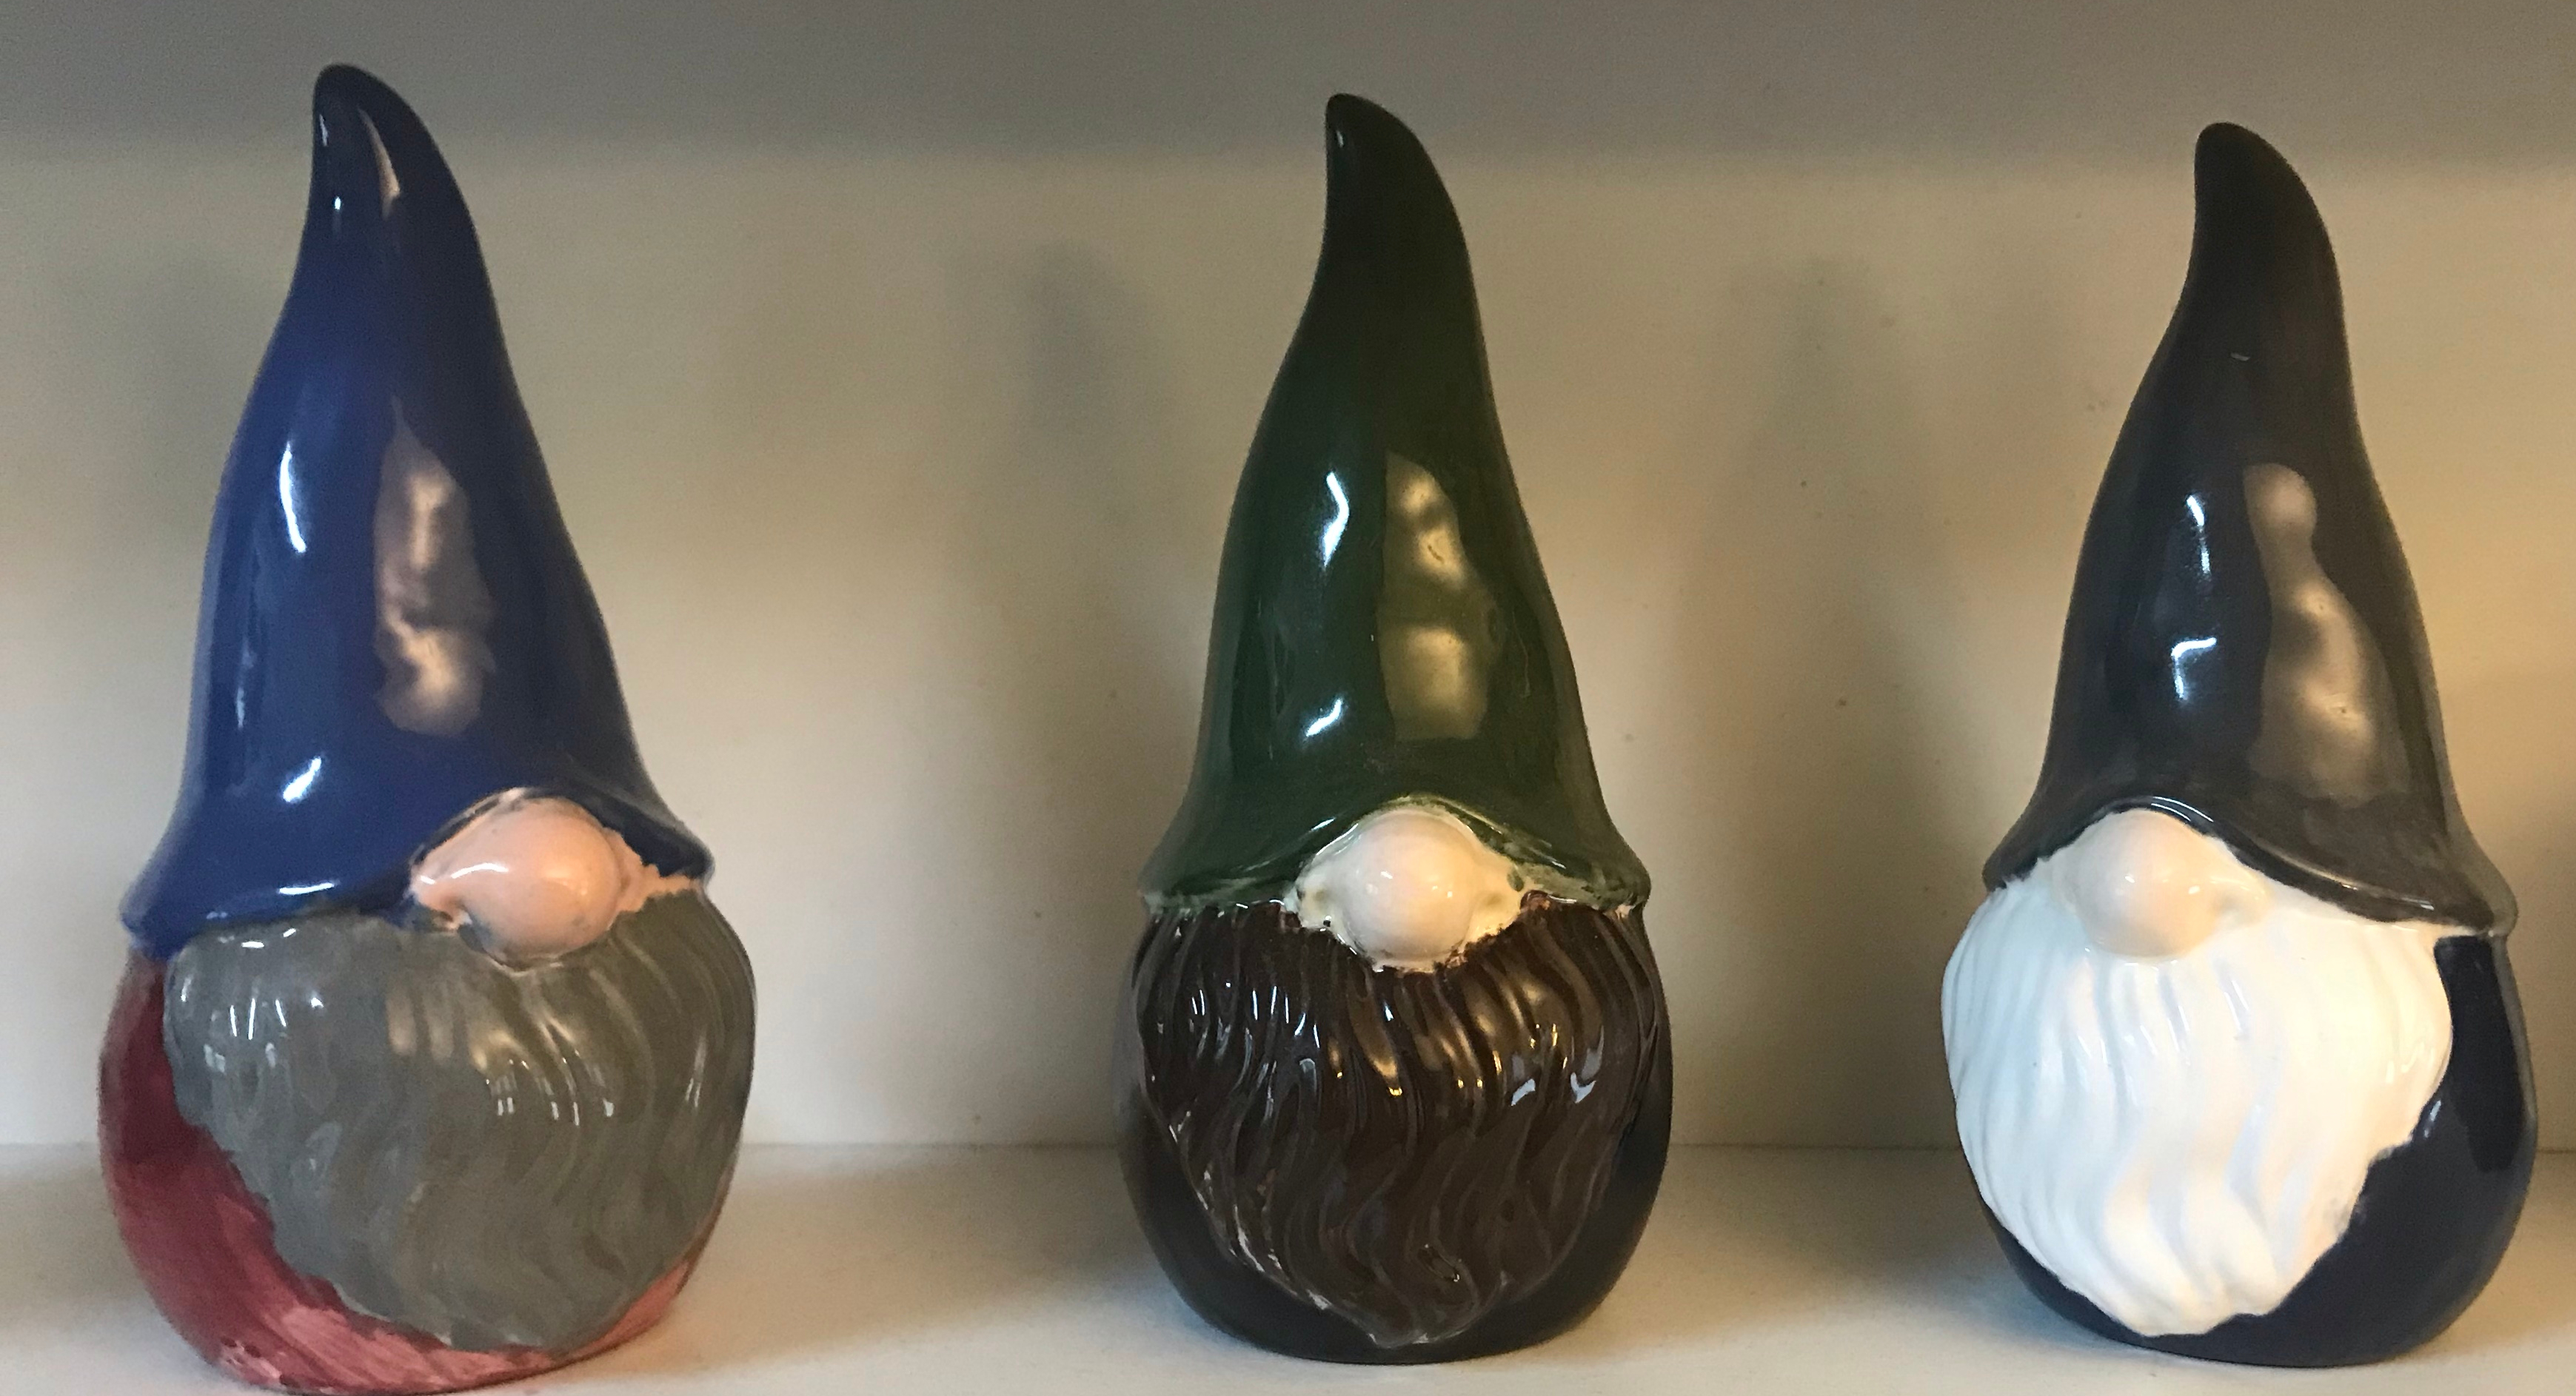 3 porcelain gnomes: one with a gray beard, red shirt, and blue hat, one with a brown beard, black shirt, and green hat, and one with a white beard, blue shirt, and gray hat